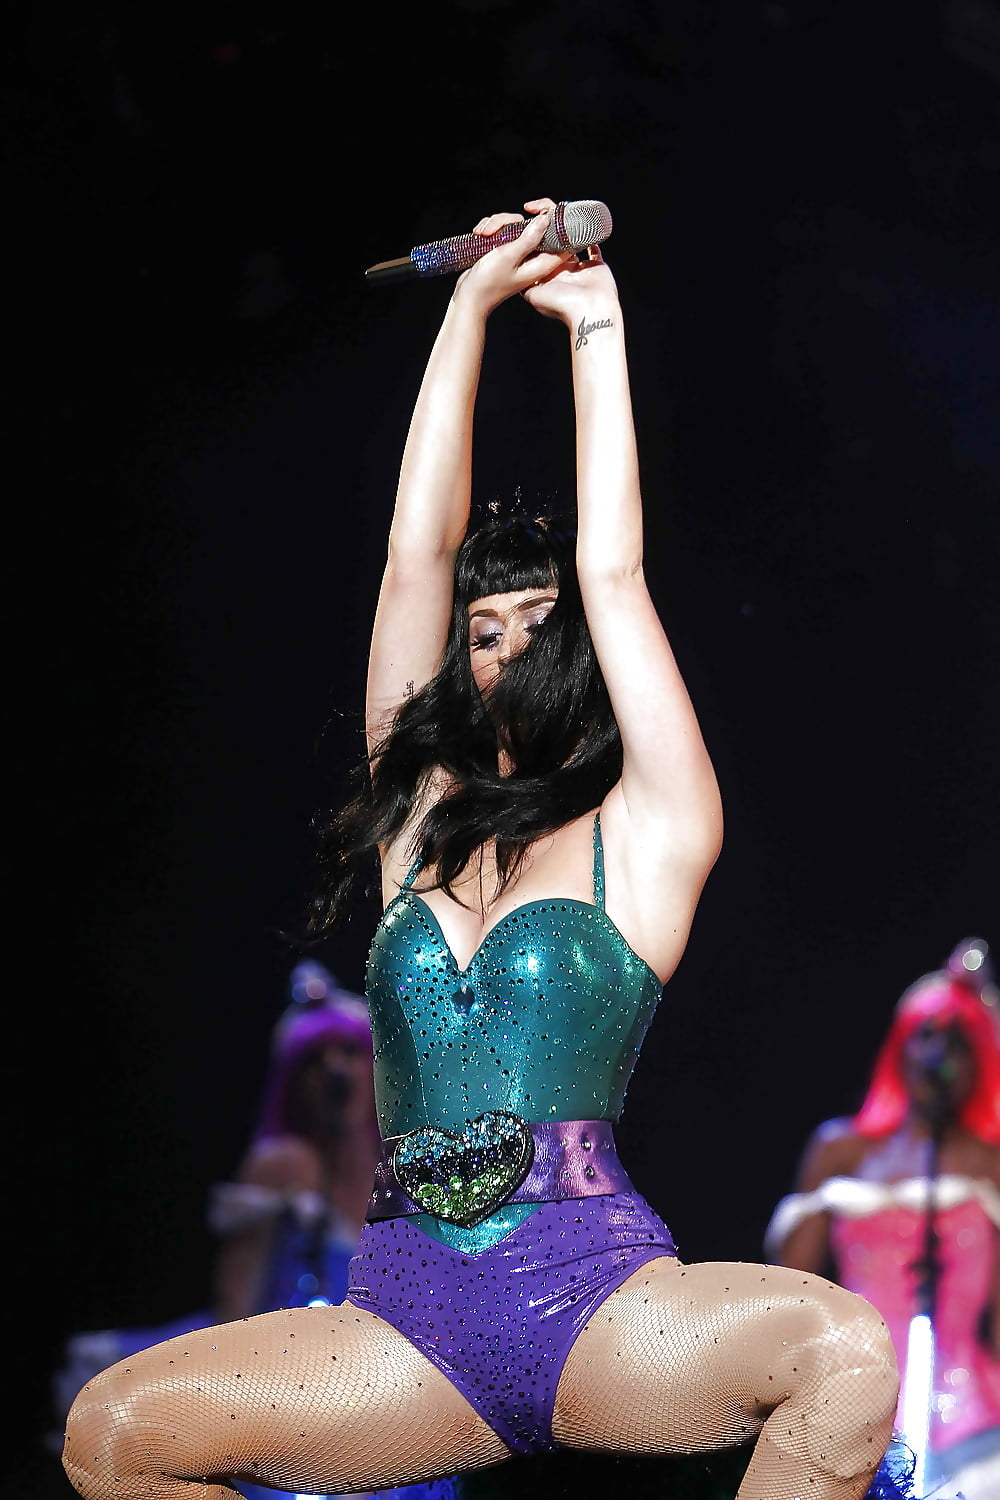 Fuck you i grabbed katy perry's ass